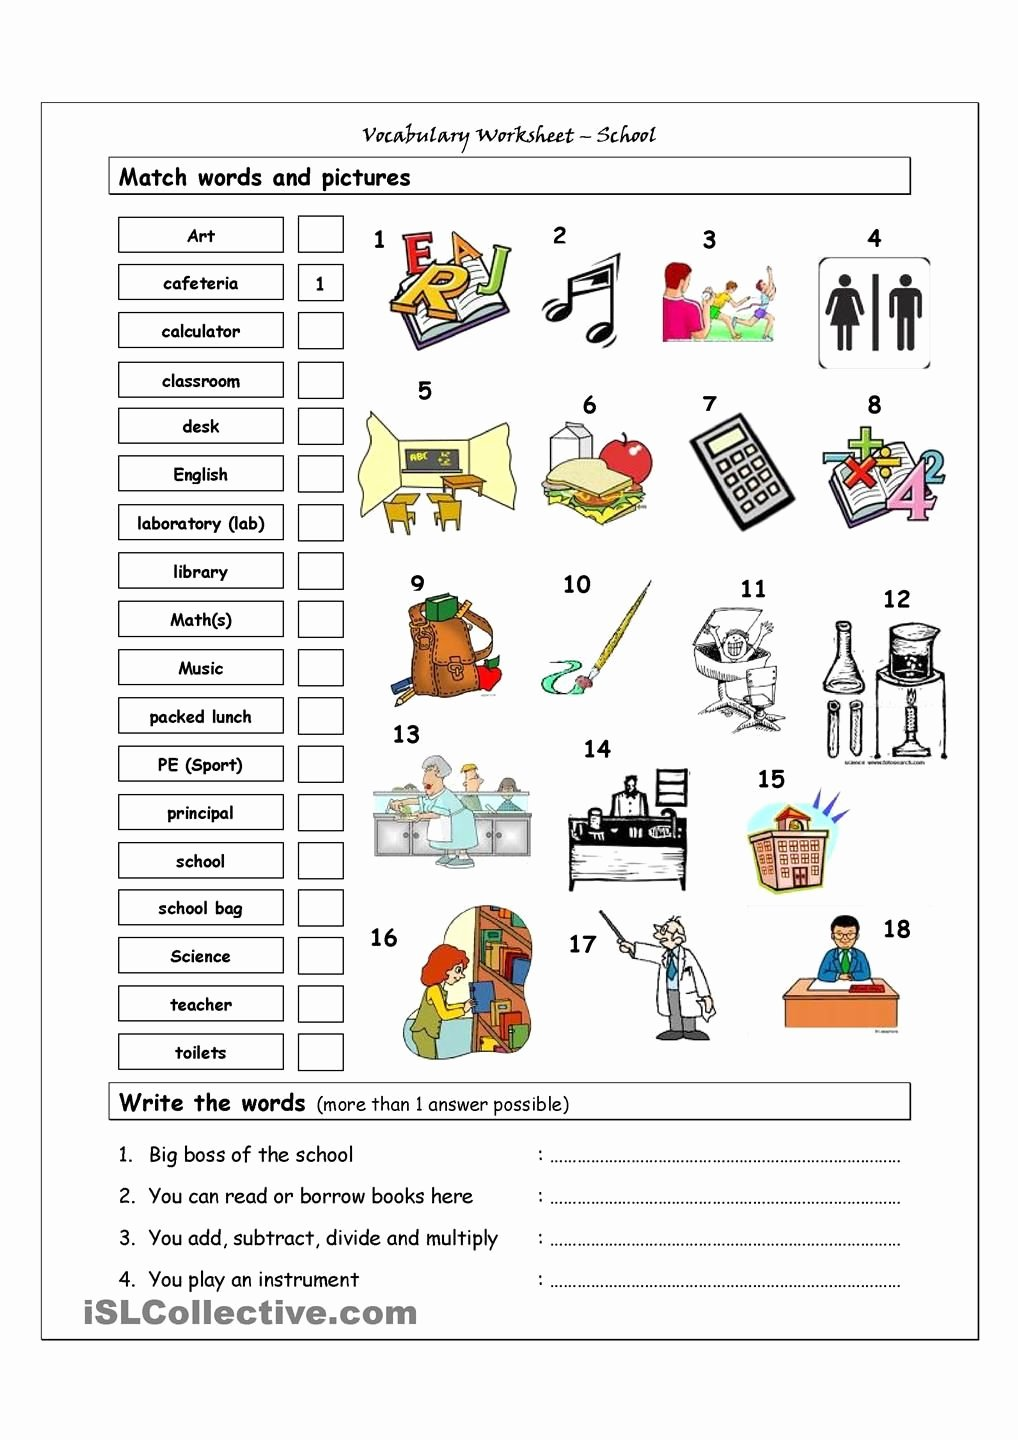 Vocabulary Worksheets for Preschoolers Unique Vocabulary Matching Worksheet School Academic Worksheets